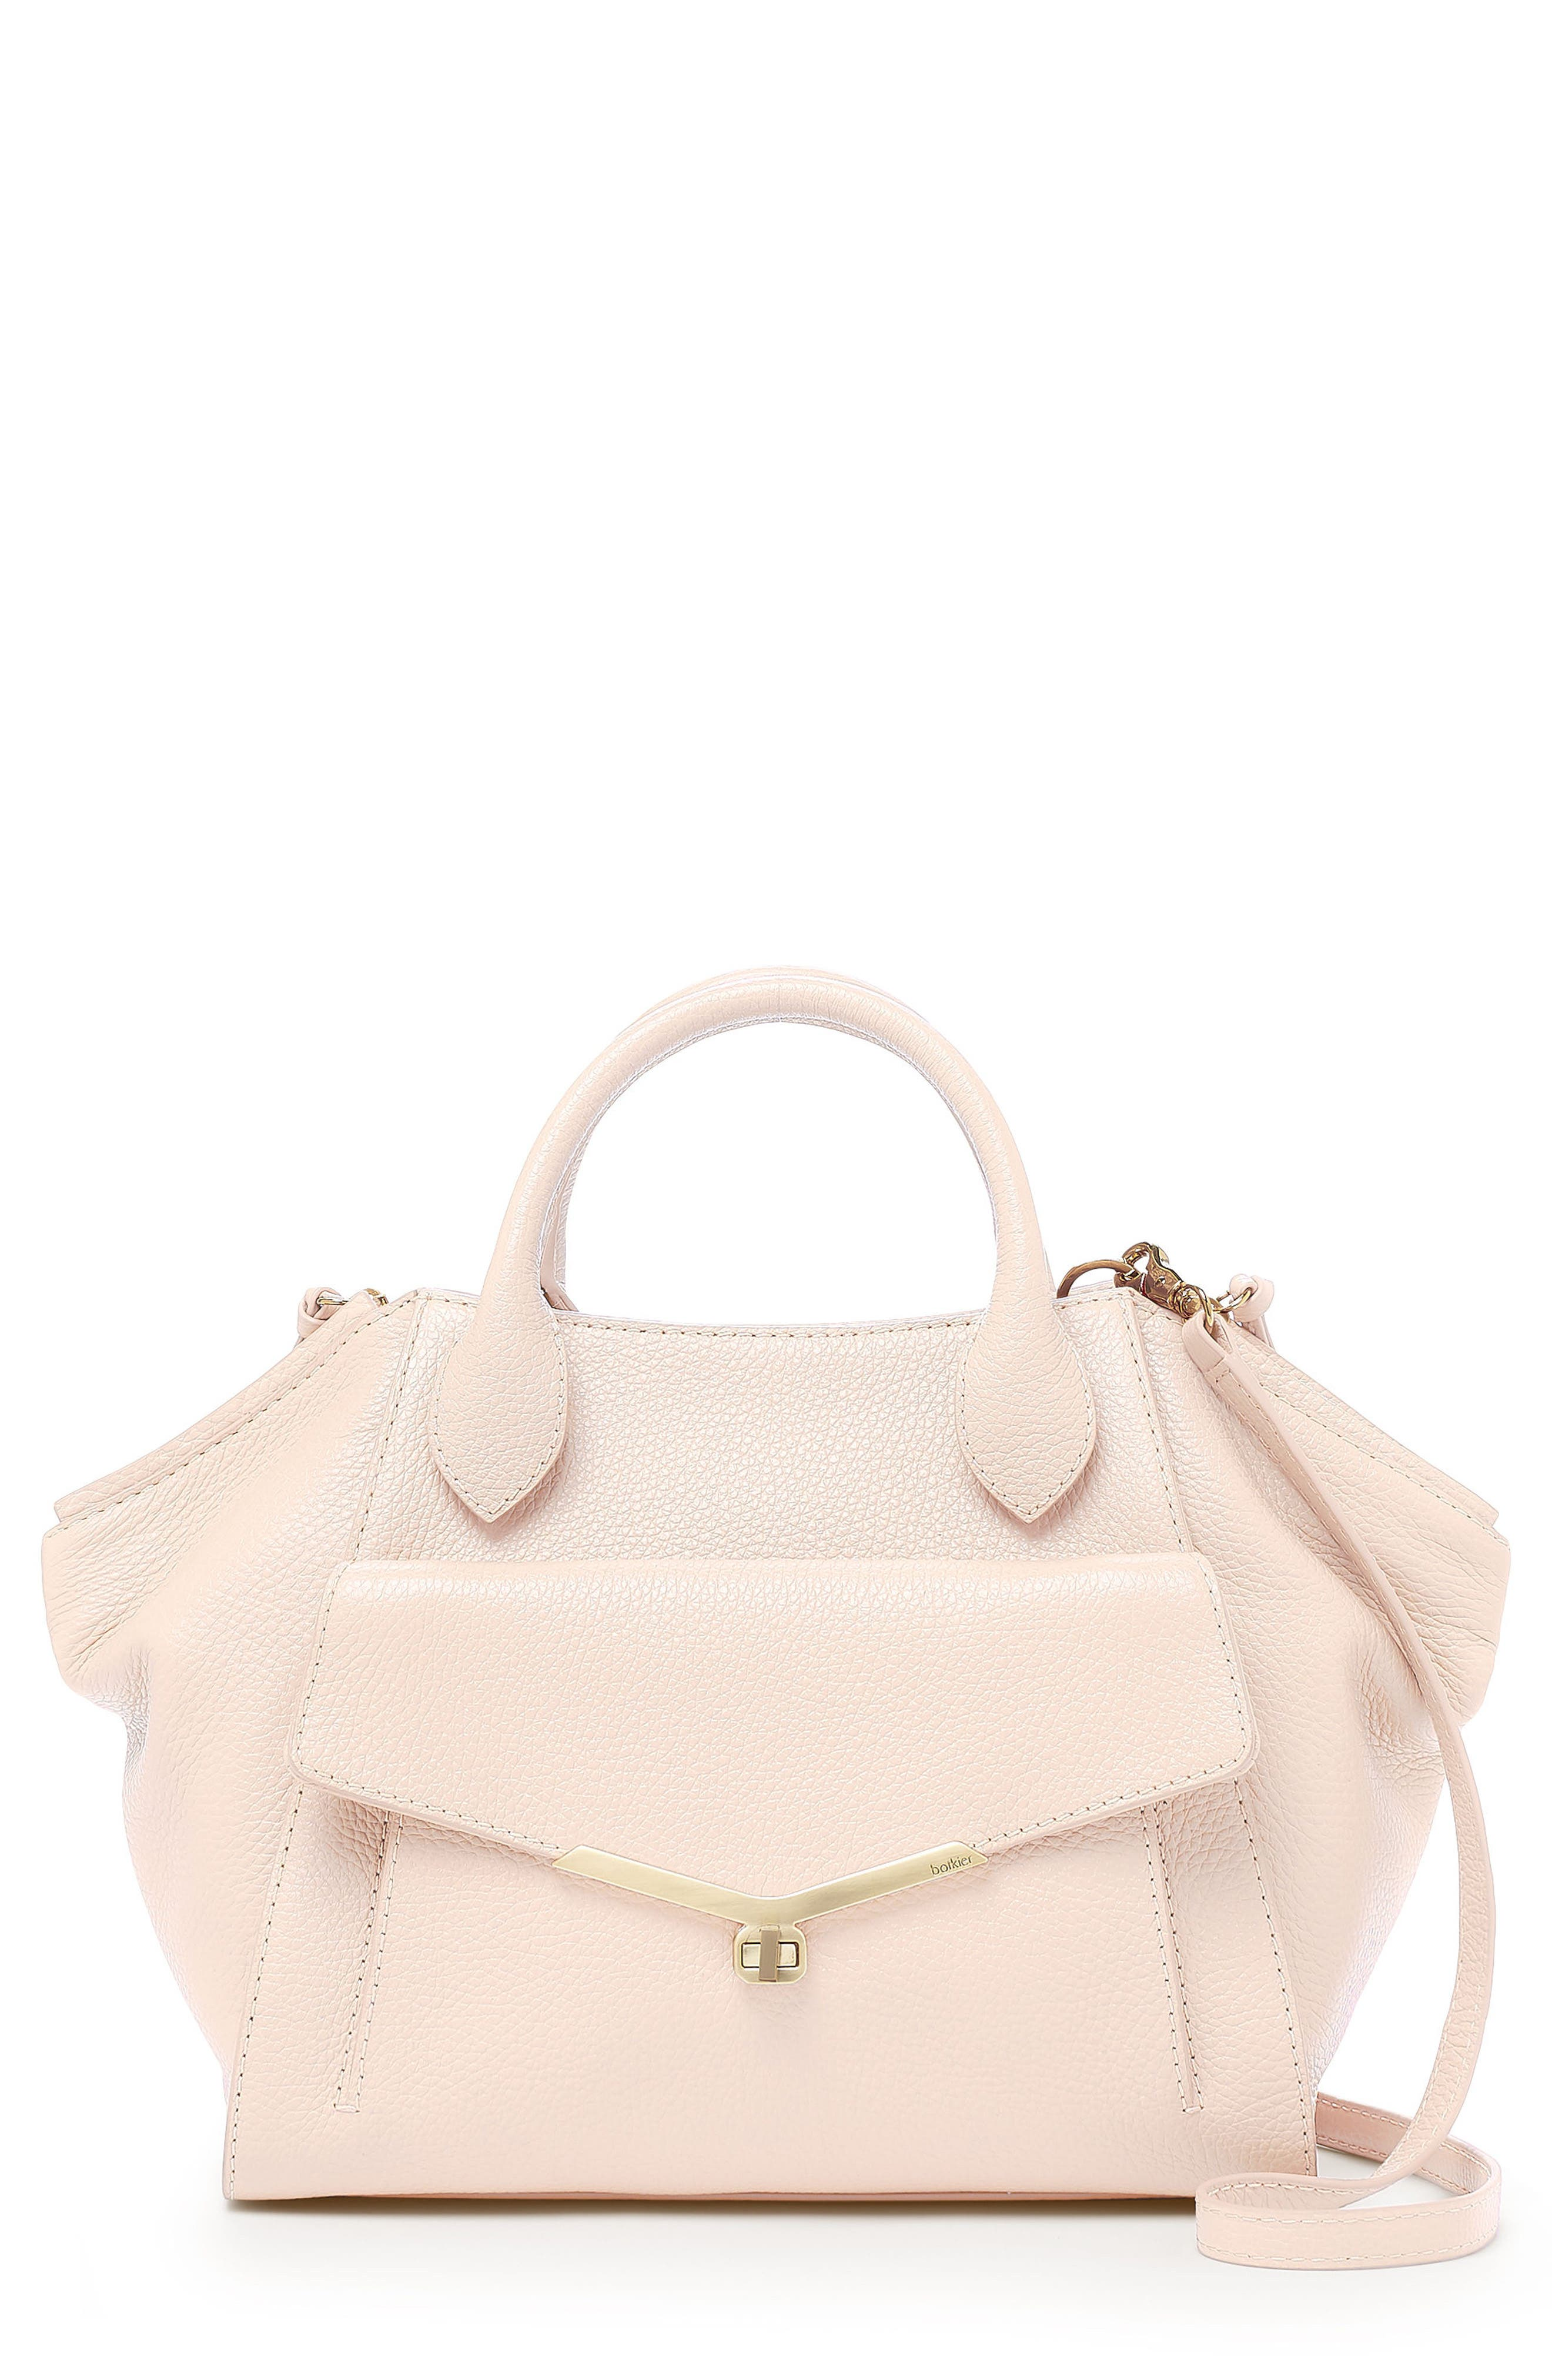 Vivi Calfskin Leather Satchel,                             Main thumbnail 1, color,                             Blossom